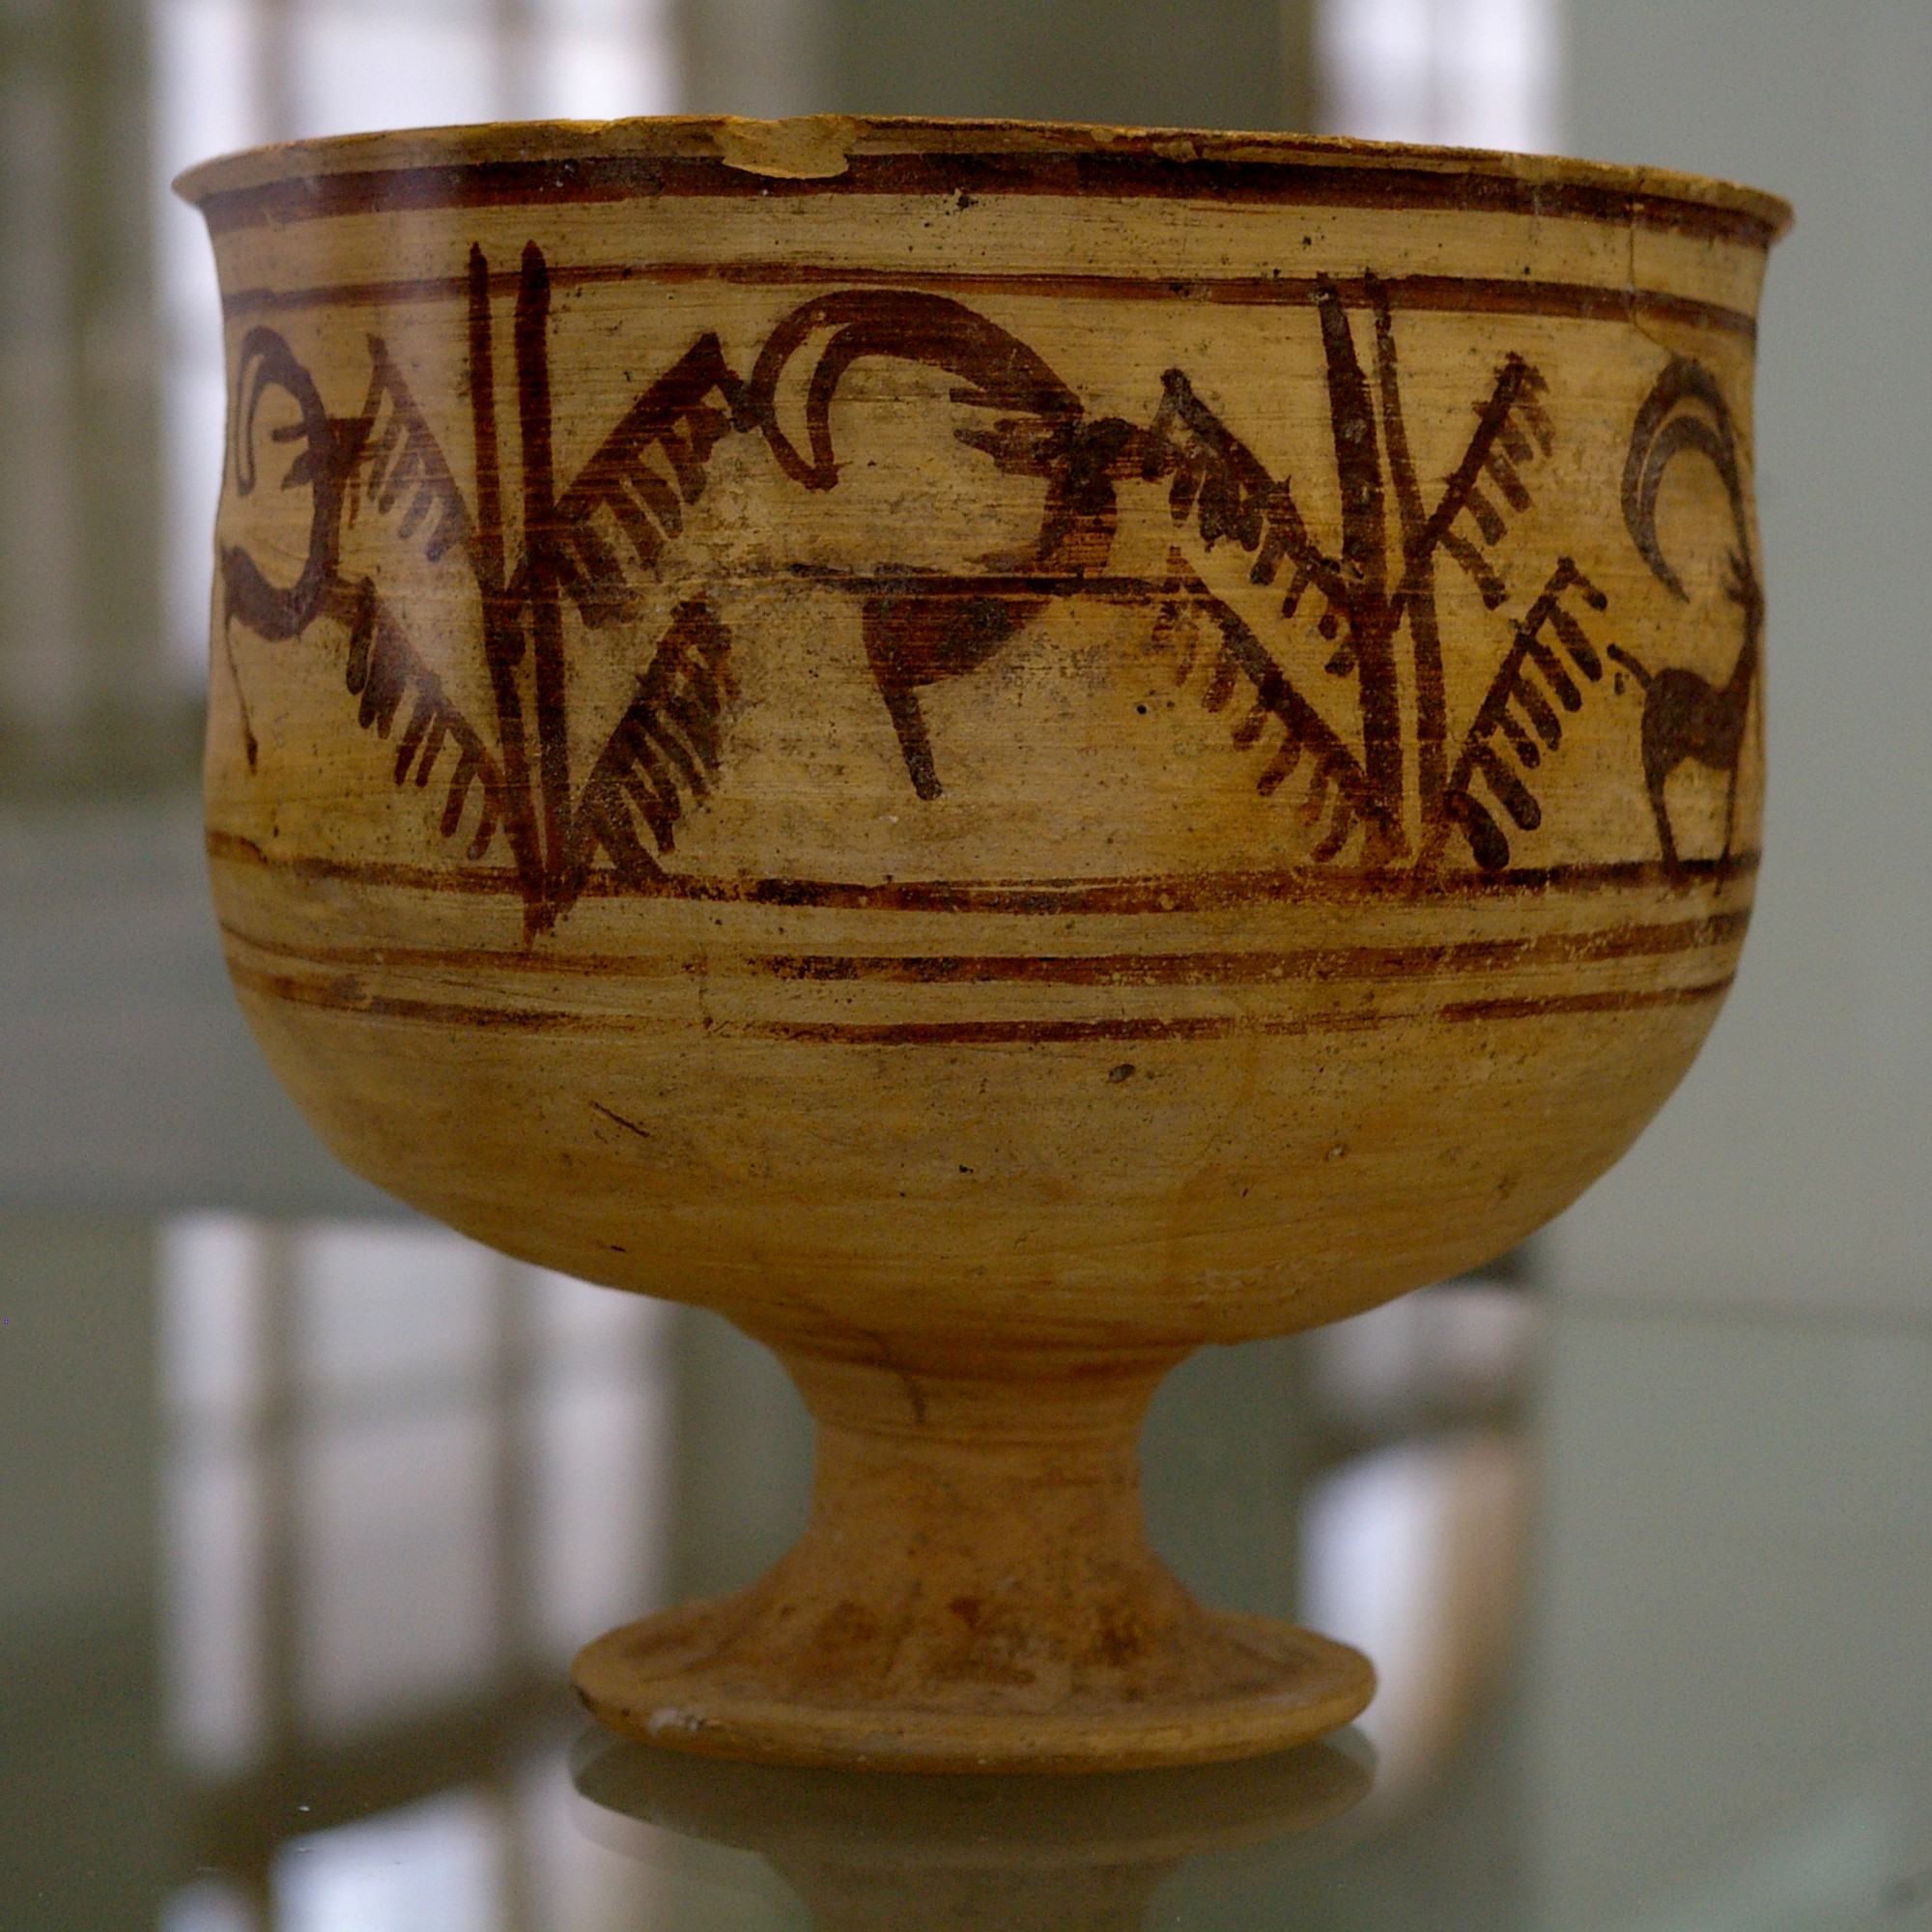 http://upload.wikimedia.org/wikipedia/commons/5/5b/Animation_vase_2.jpg